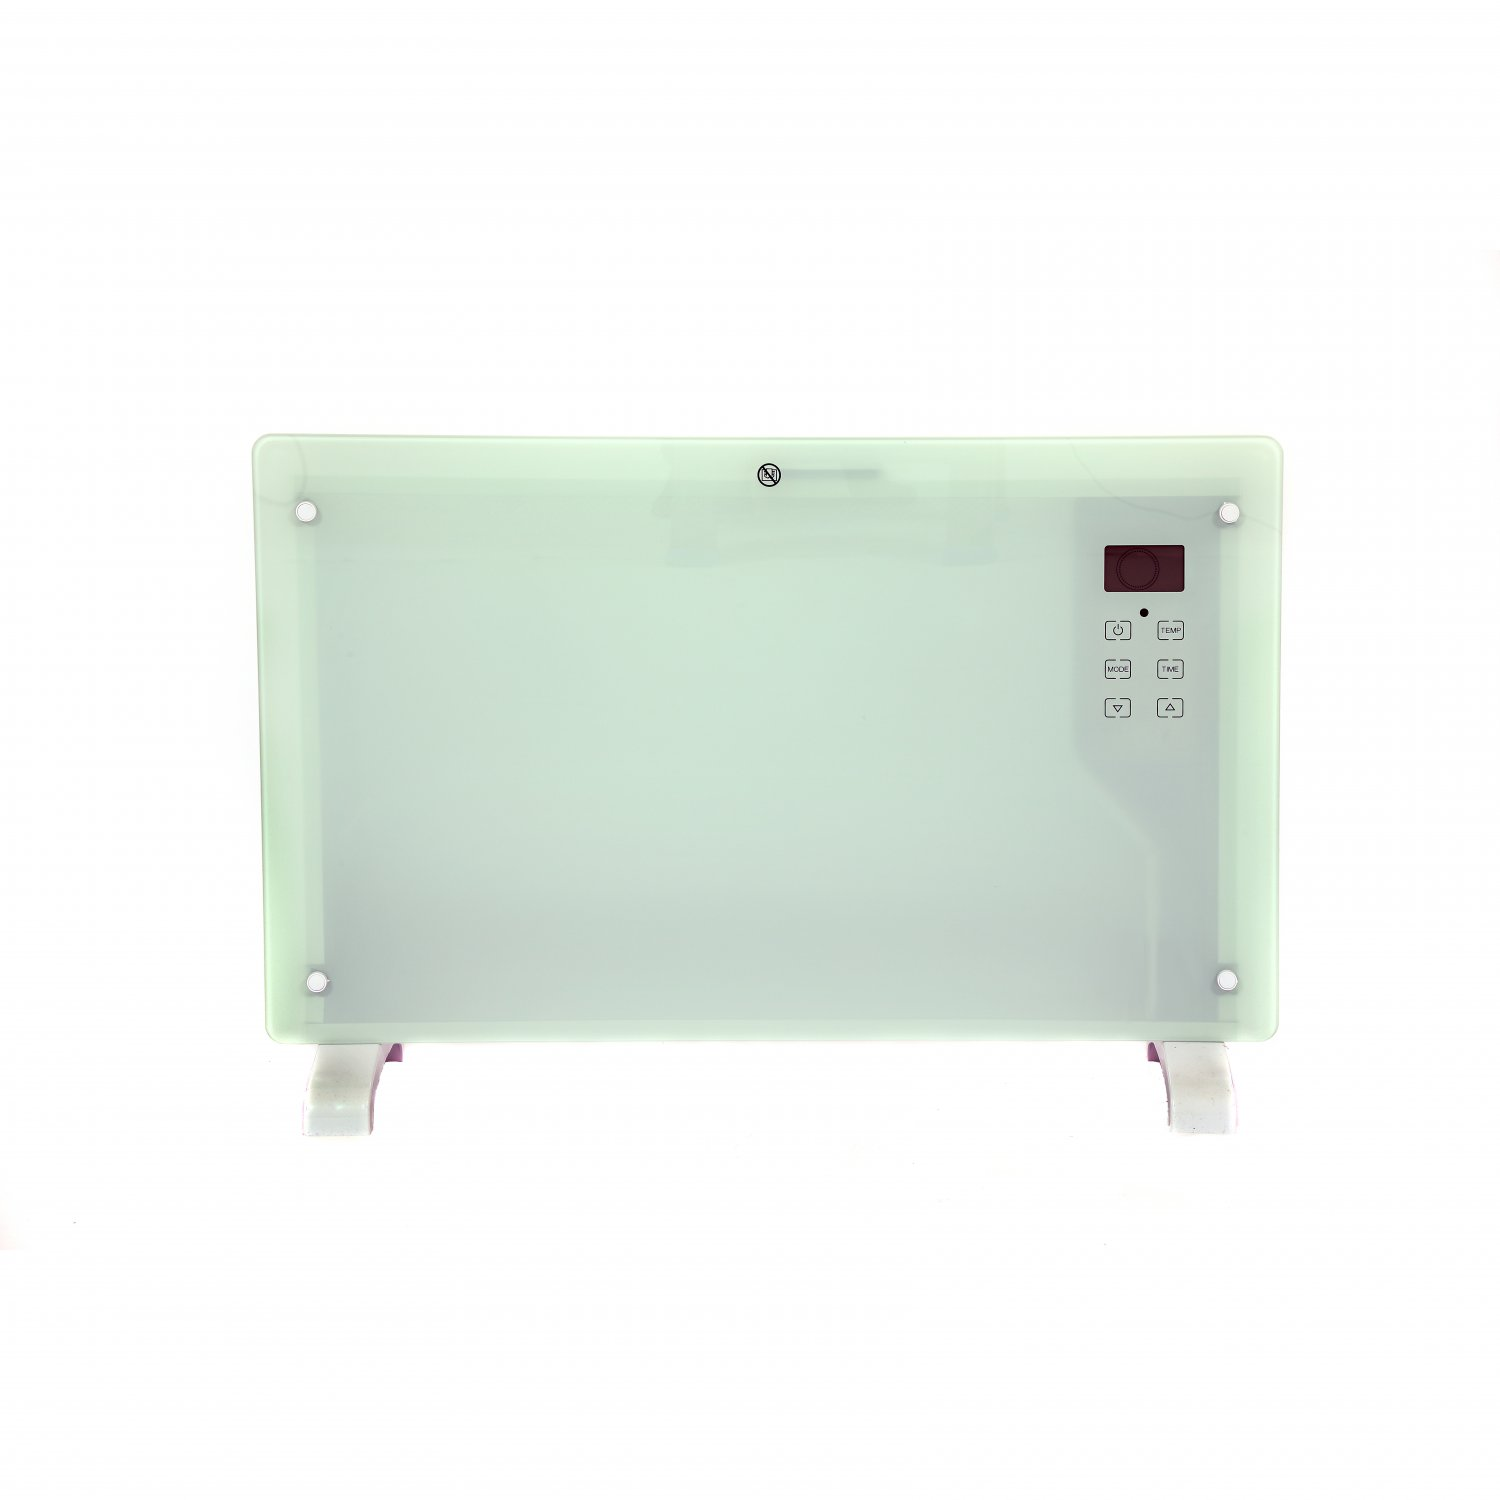 2000W White Glass Free Standing Electric Panel Convector Heater